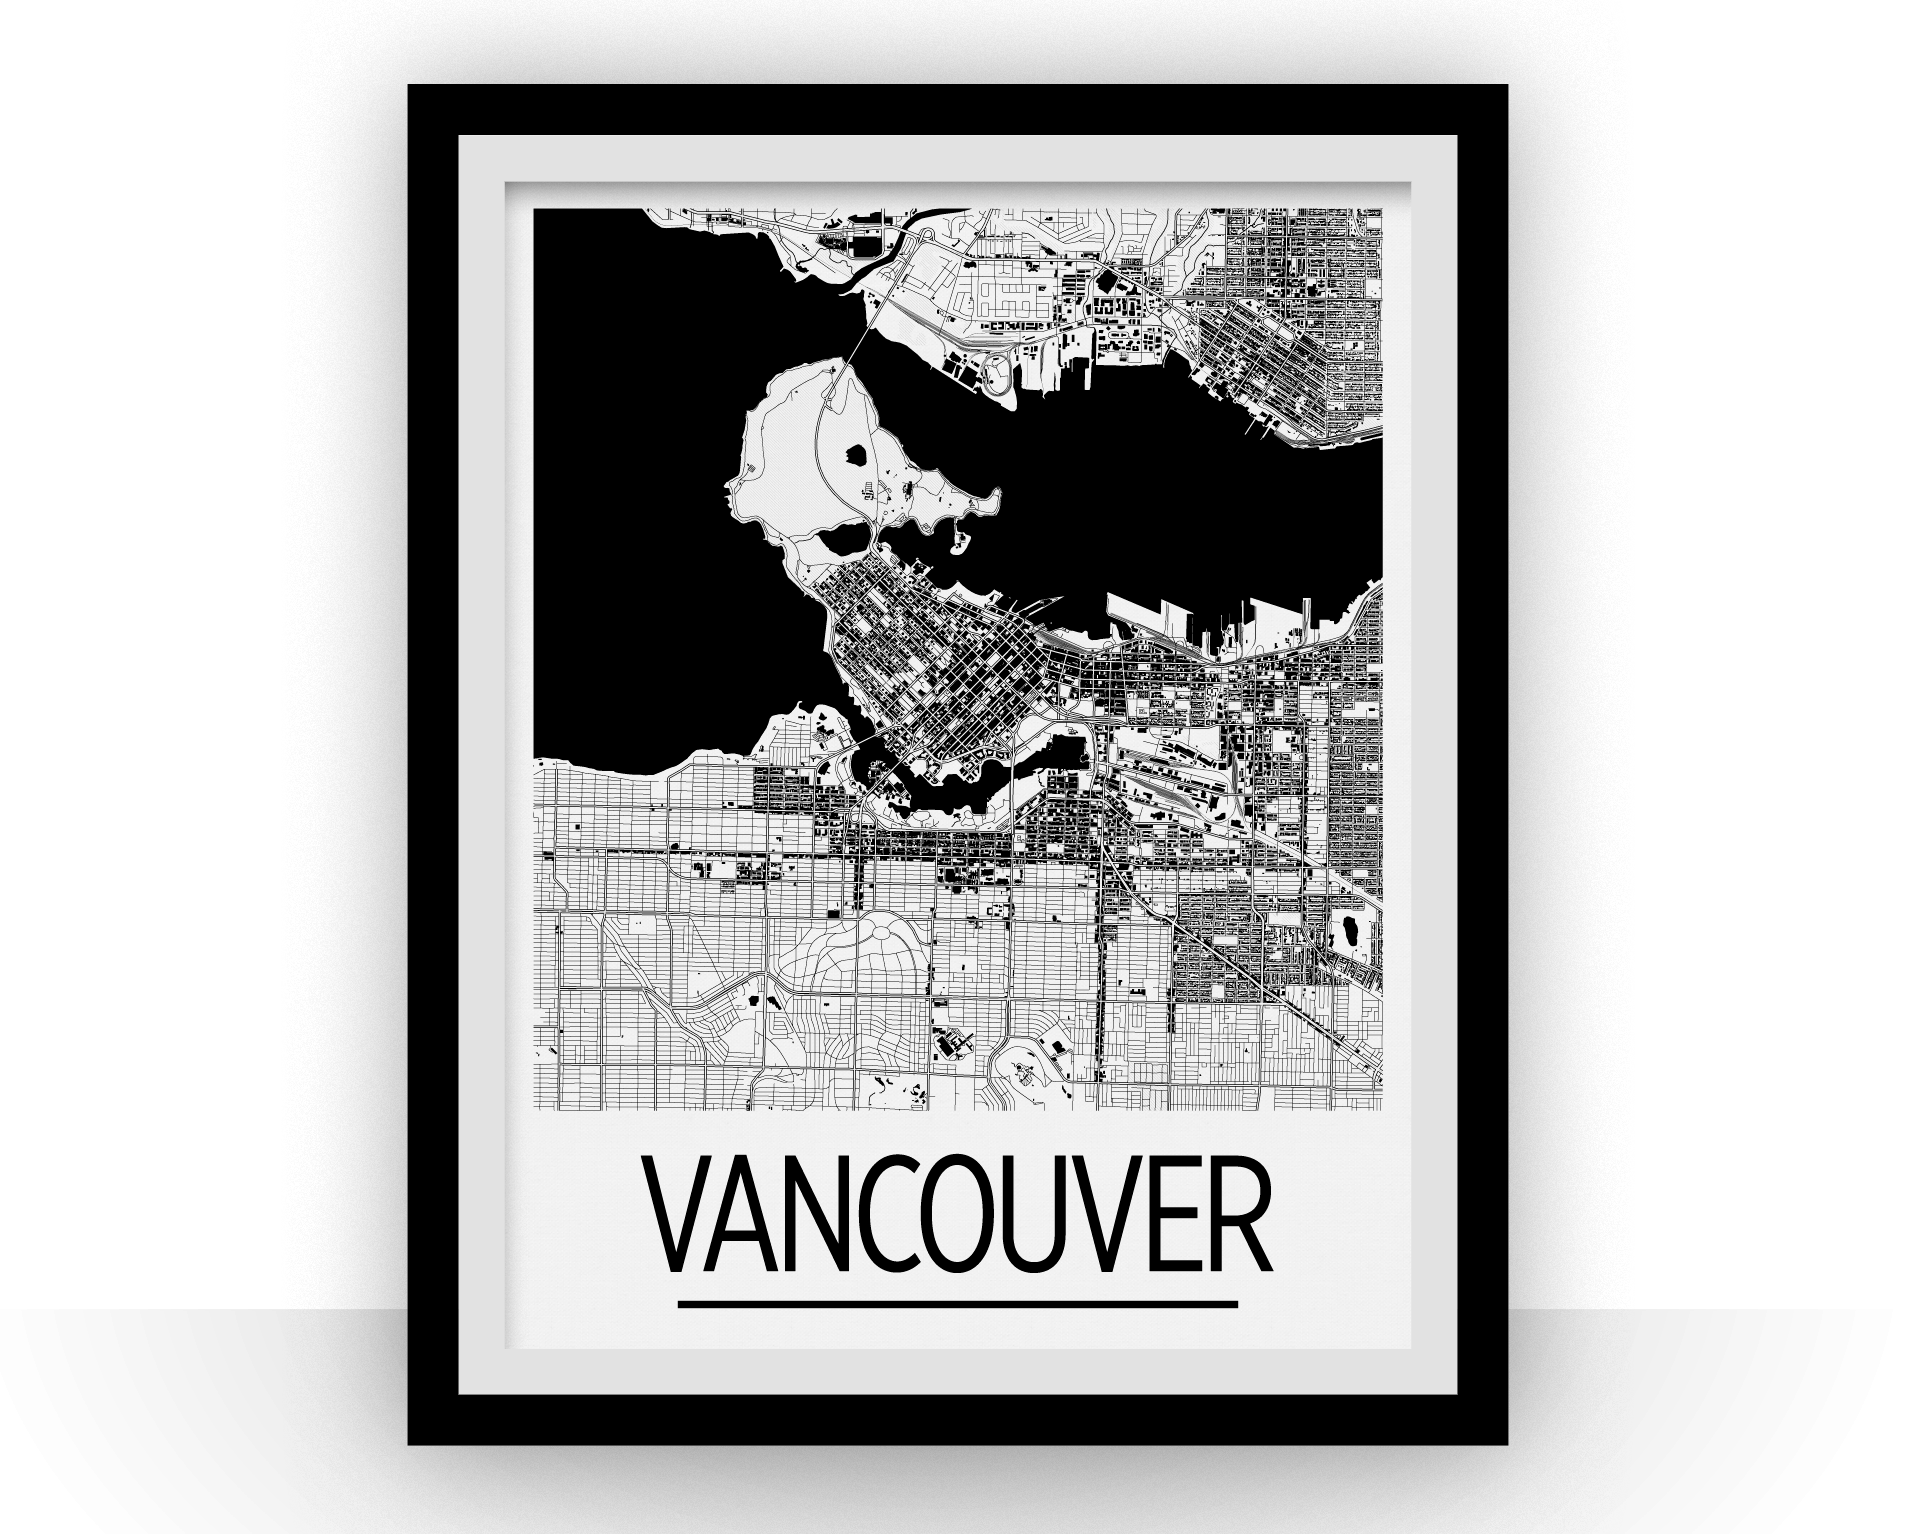 Vancouver map poster canada map print art deco series ilikemaps vancouver map poster canada map print art deco series gumiabroncs Gallery